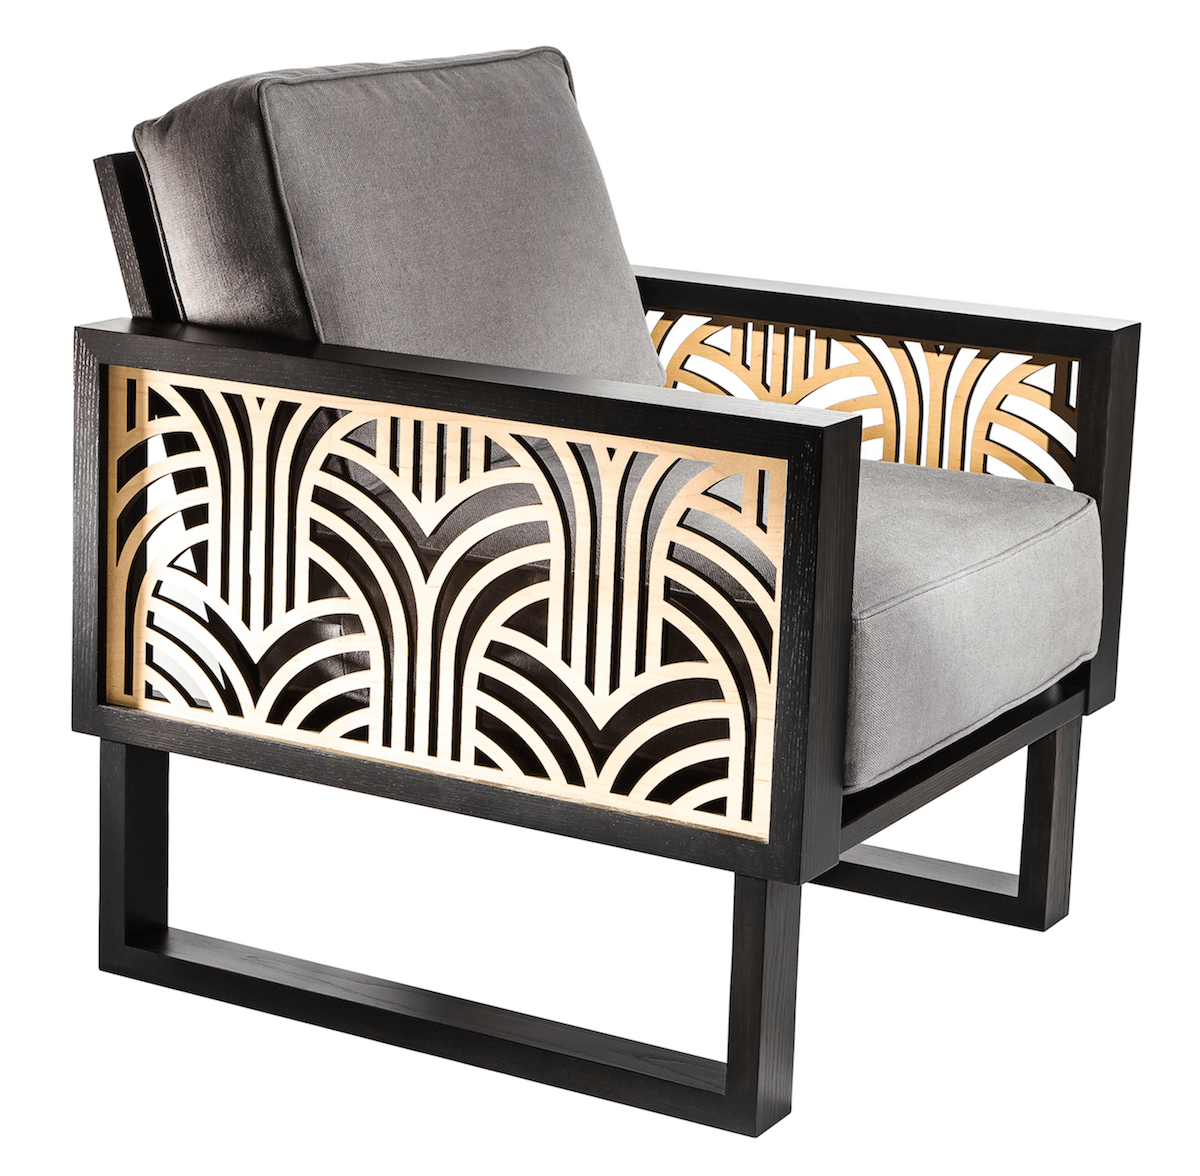 An Art Deco Lounge Chair Gray Twist Modern